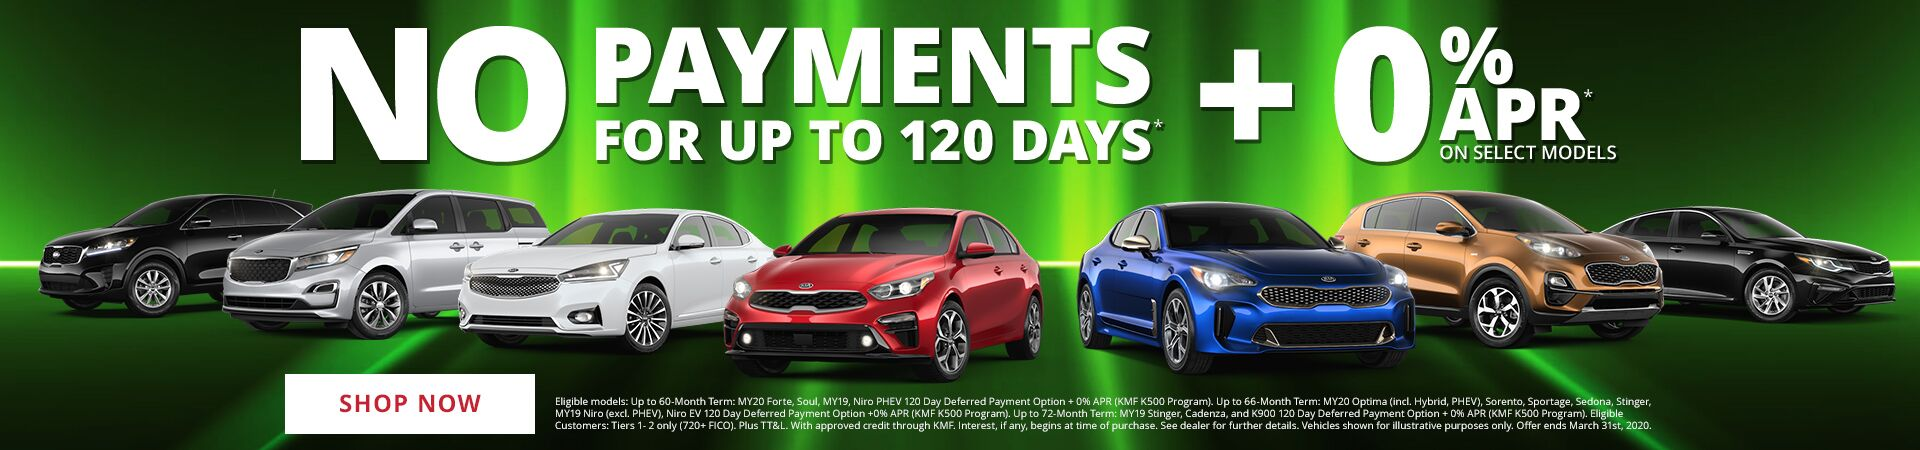 No Payments for 90 days